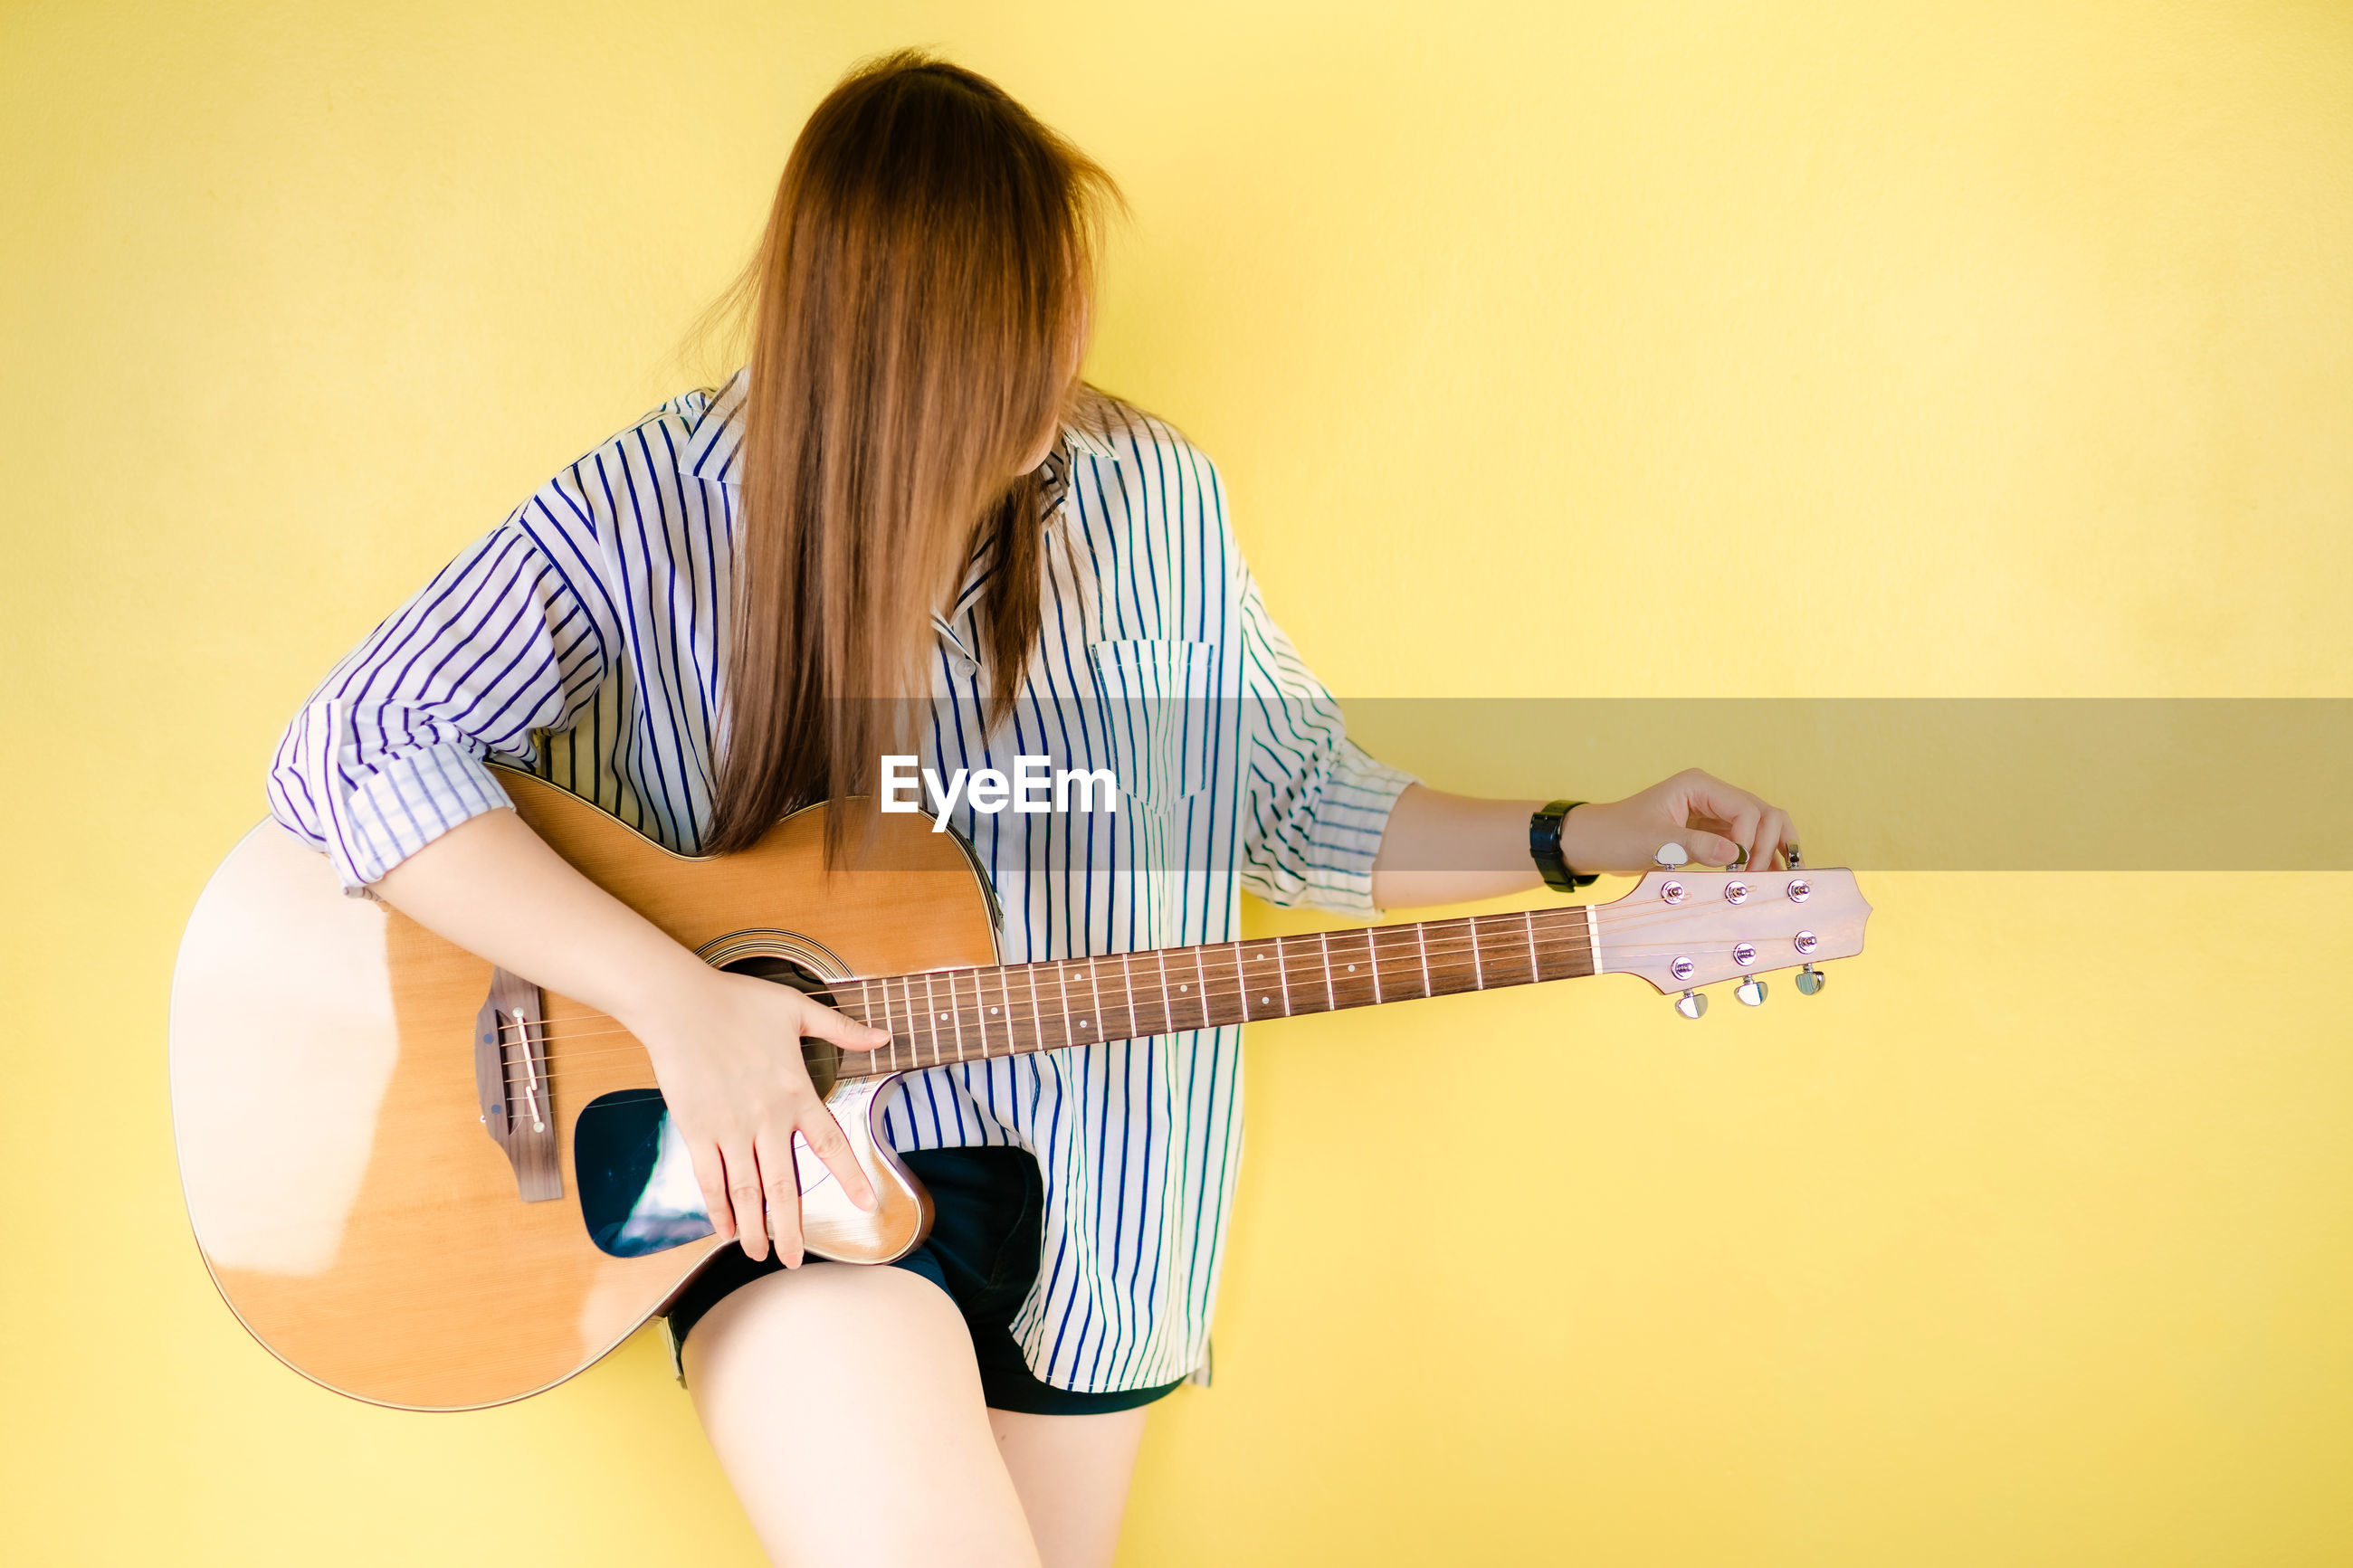 Woman playing guitar against wall